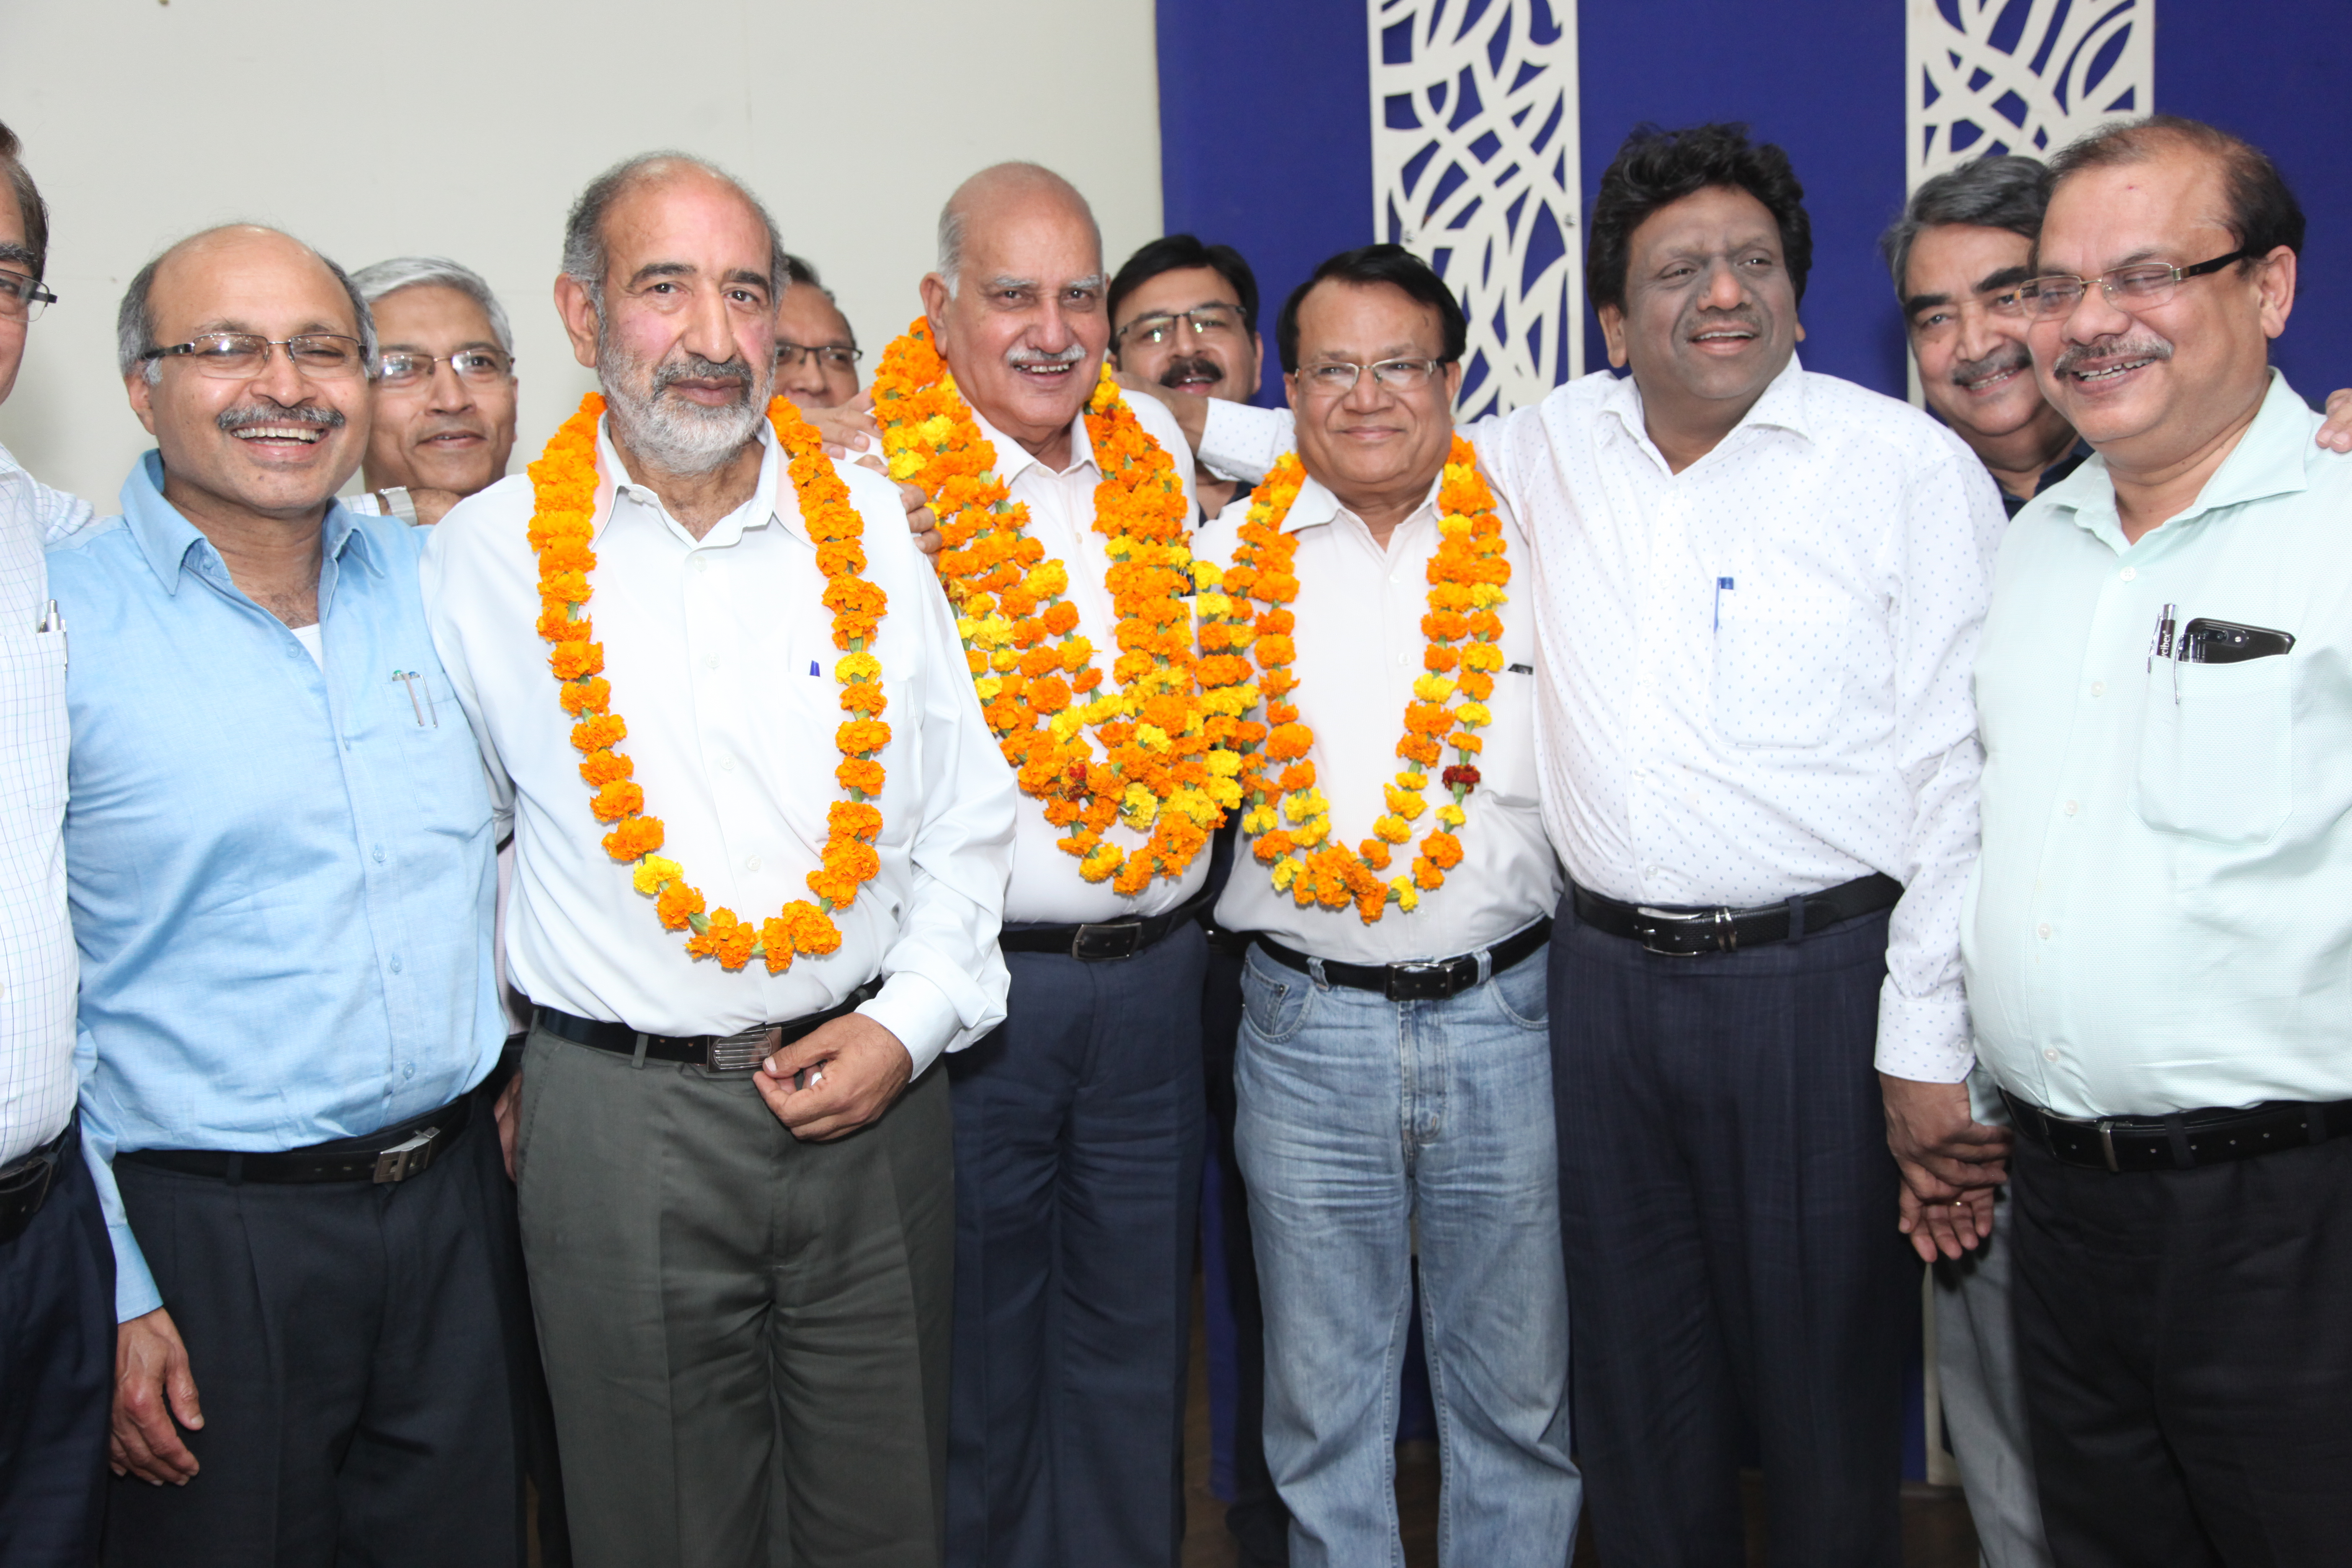 Dr Arvind Chopra unanimously elected Secretary of Delhi Medical Association